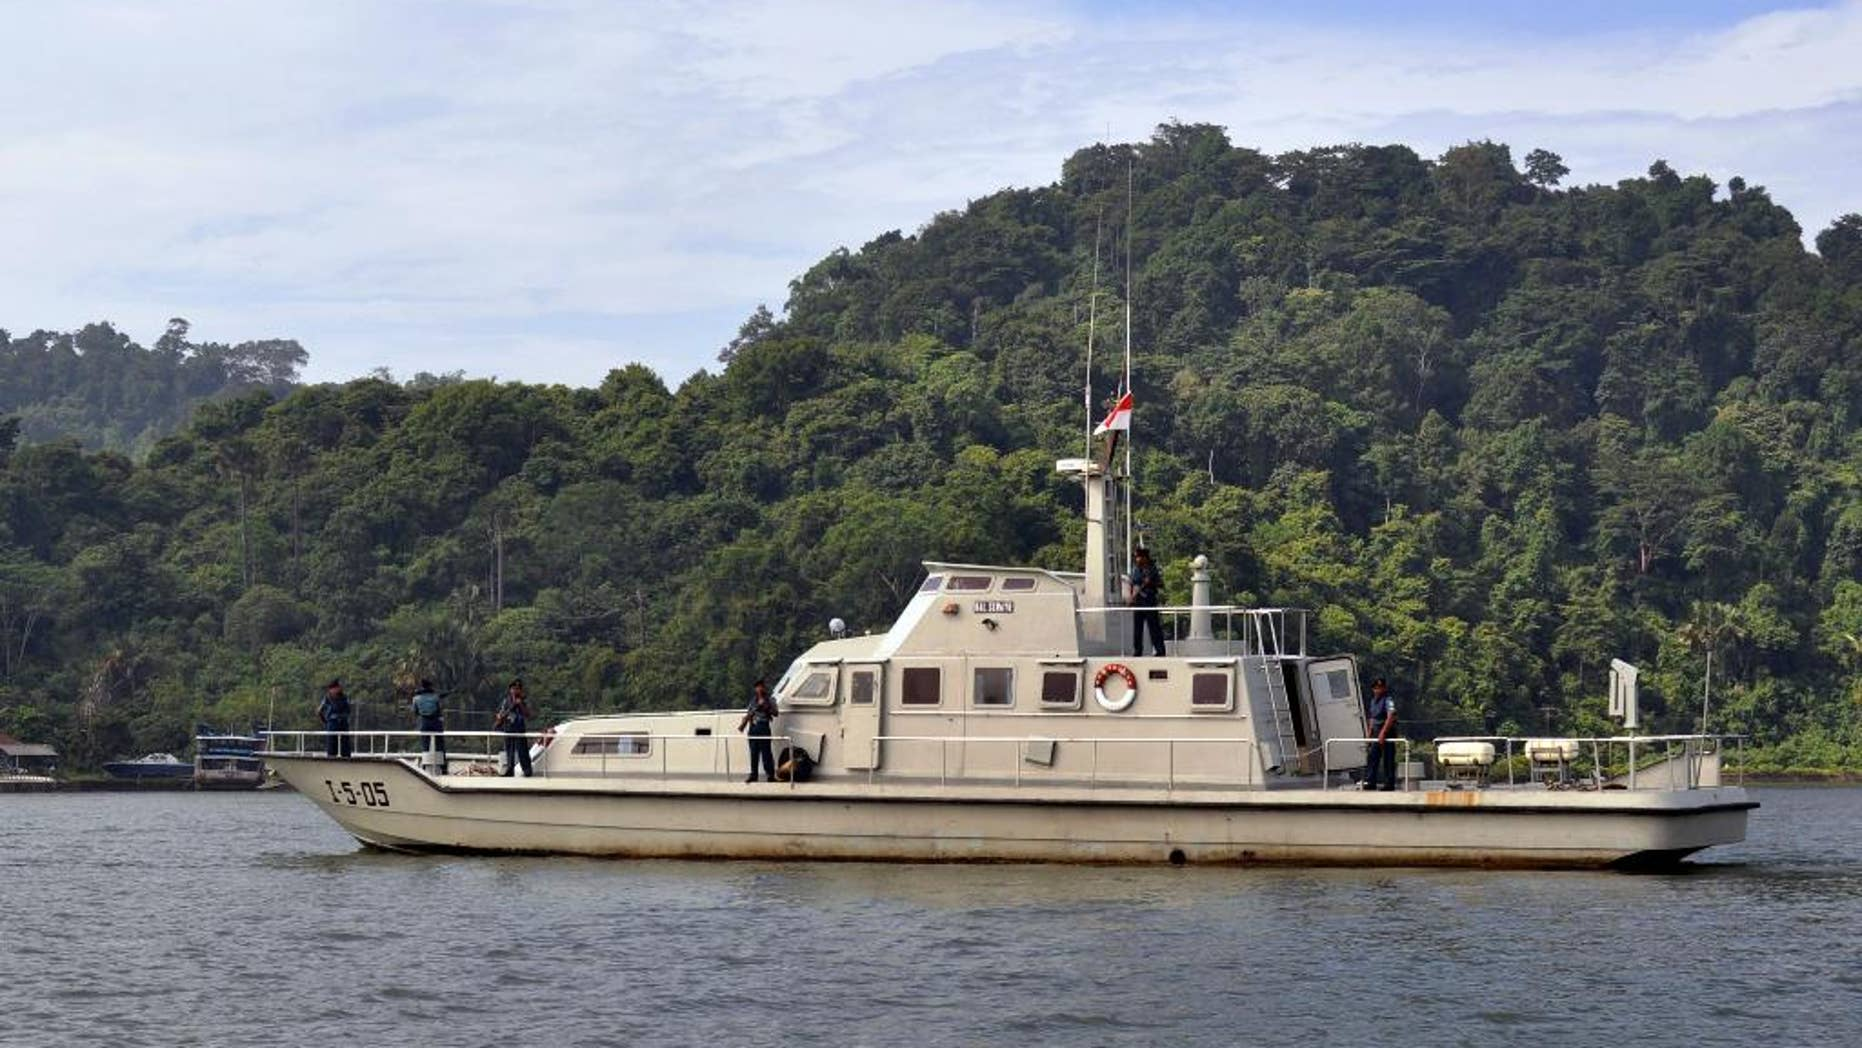 An Indonesian Navy boat carrying armed crew members patrol the waters near the prison island of Nusakambangan, background, where the planned executions of seven convicted foreign drug smugglers will be performed, in Cilacap, Central Java, Indonesia, Tuesday, Feb. 24, 2015. Indonesia is preparing the executions of the drug convicts from Australia, Brazil, France, Ghana, Nigeria and the Philippines. (AP Photo/Wagino)